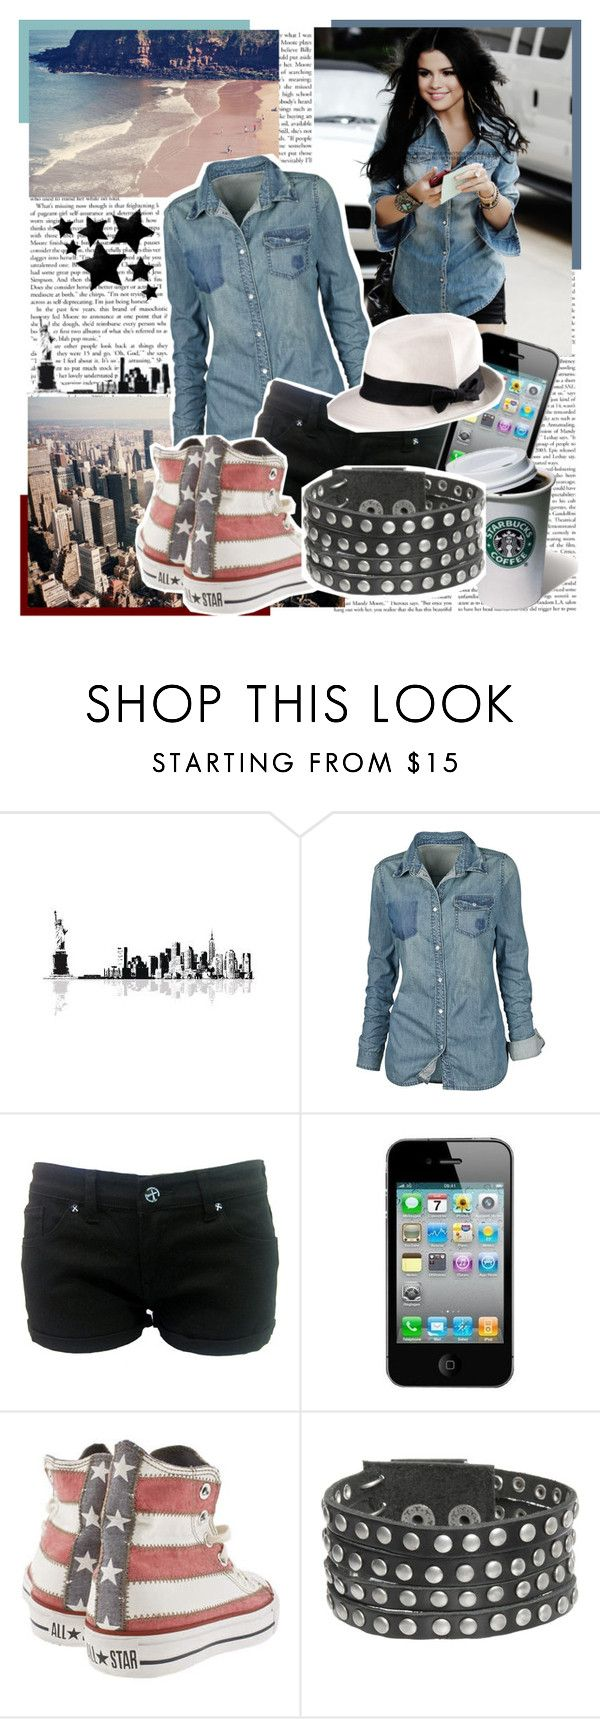 """""""..girl I'm just inlove with you..♥"""" by sophie-is-a-dreamer ❤ liked on Polyvore featuring Fat Face, Criminal Damage, Apple, Converse, G by Guess, H&M and selena gomez"""